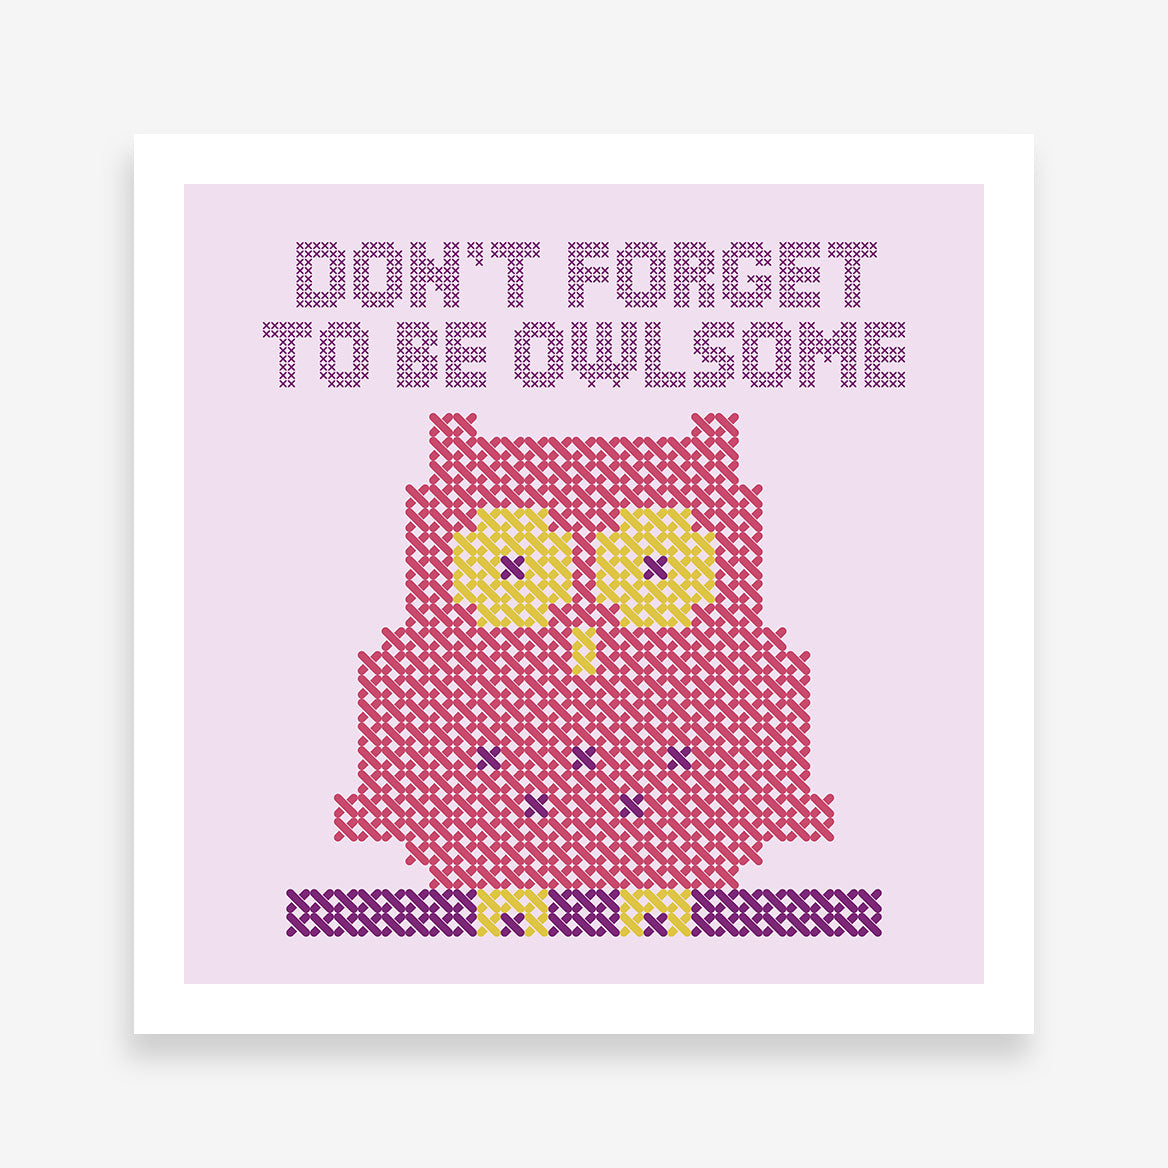 "Stitch style poster print with an owl and text ""Don't forget to be owlsome"", on a light purple background."